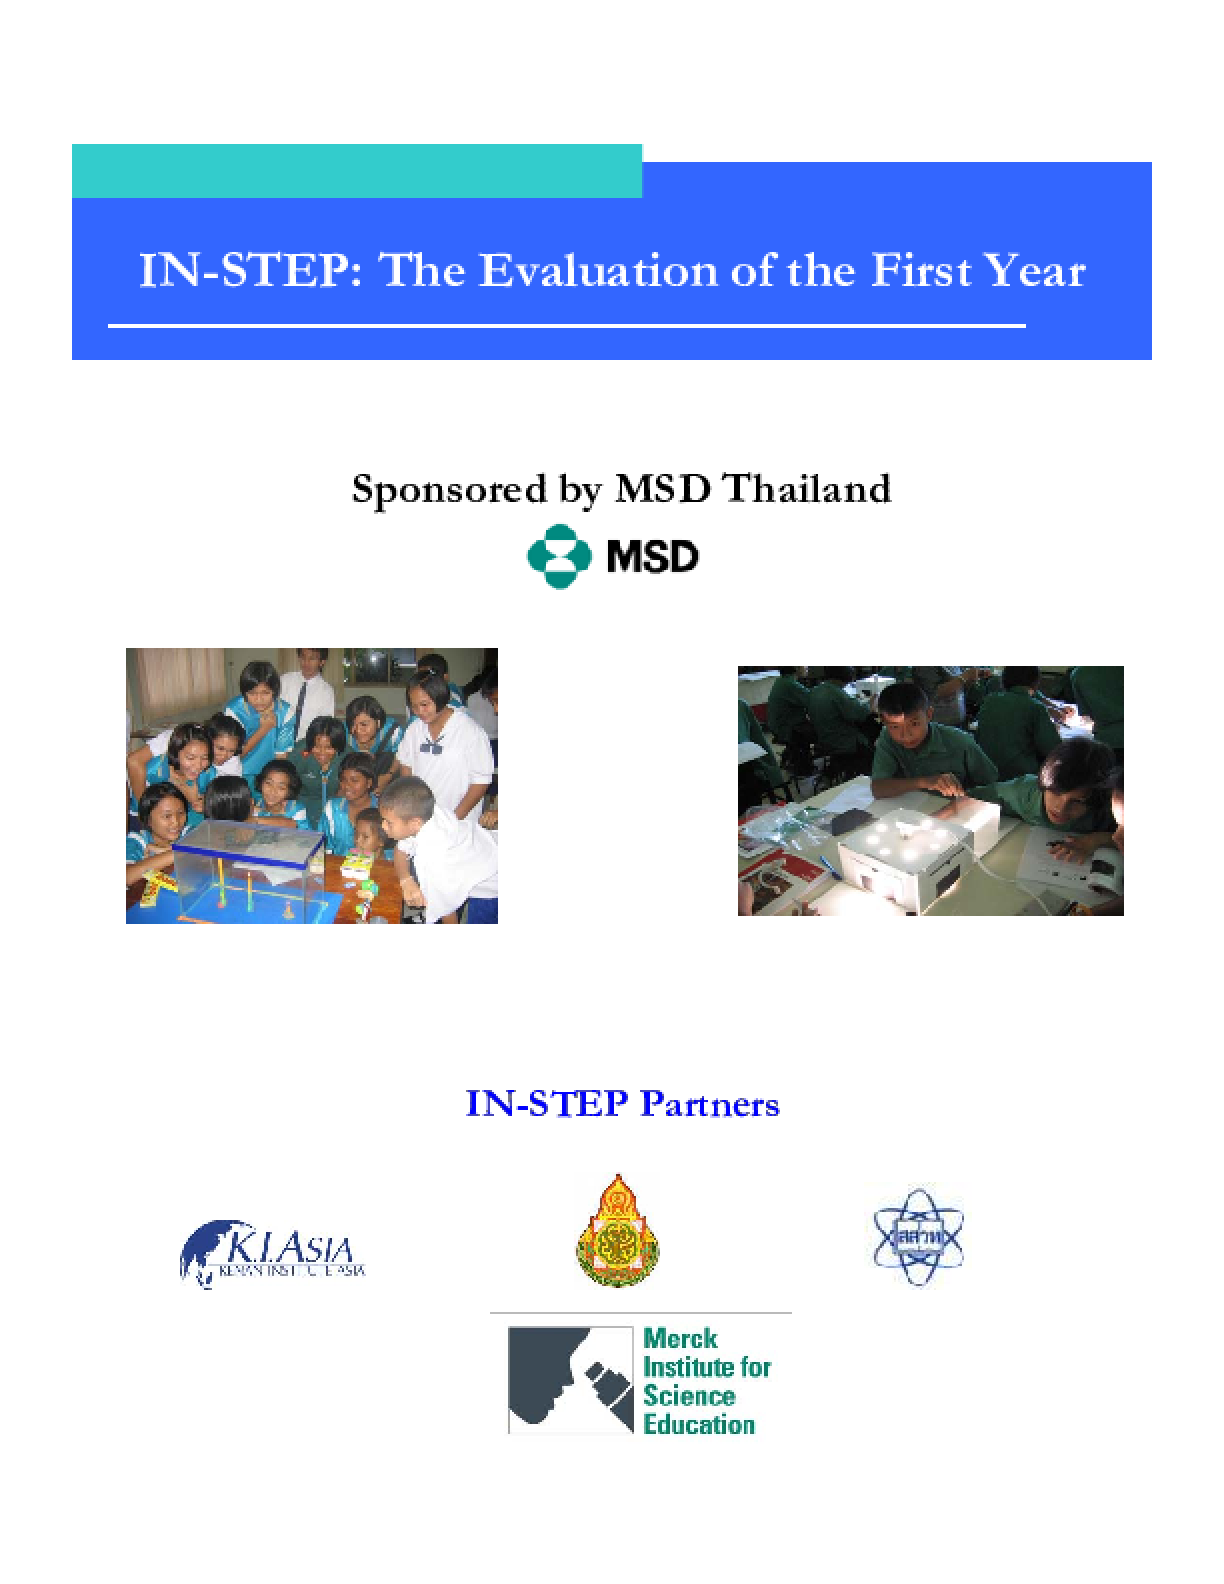 The Inquiry Based Science and Technology Education Program (IN-STEP): The Evaluation of the First Year